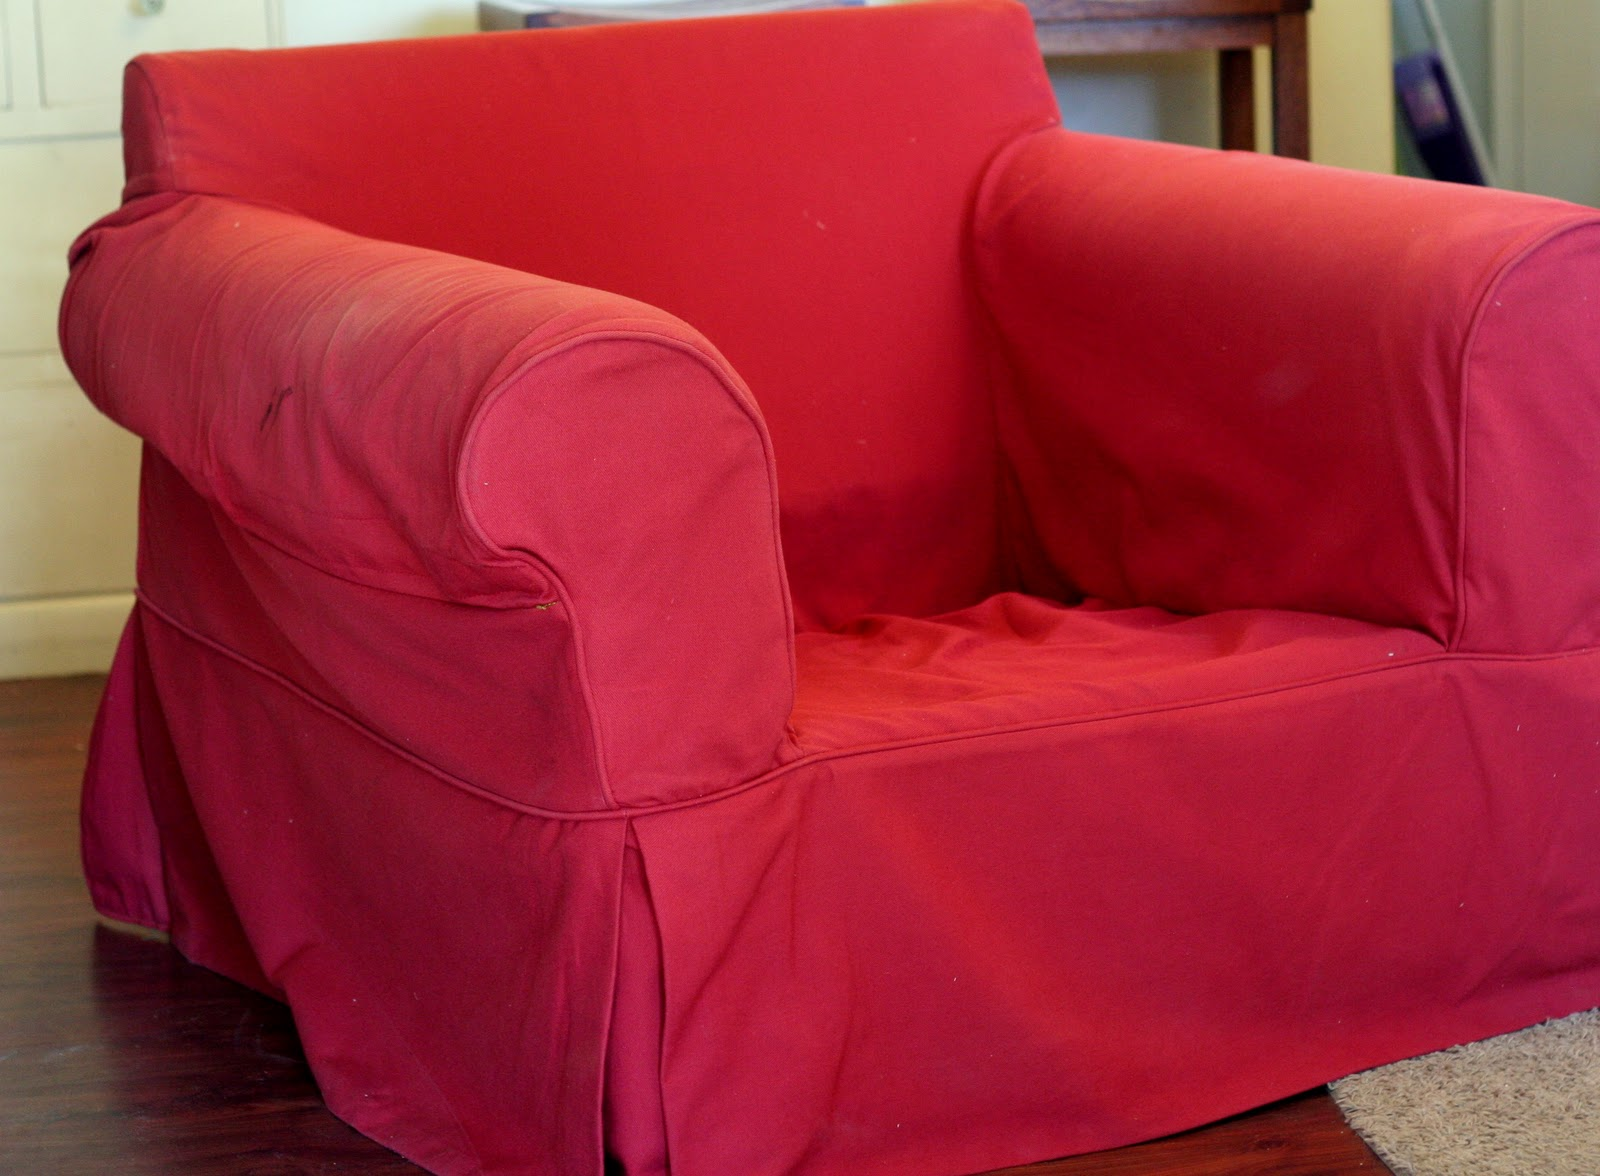 slip covers for chairs and ottomans chairs